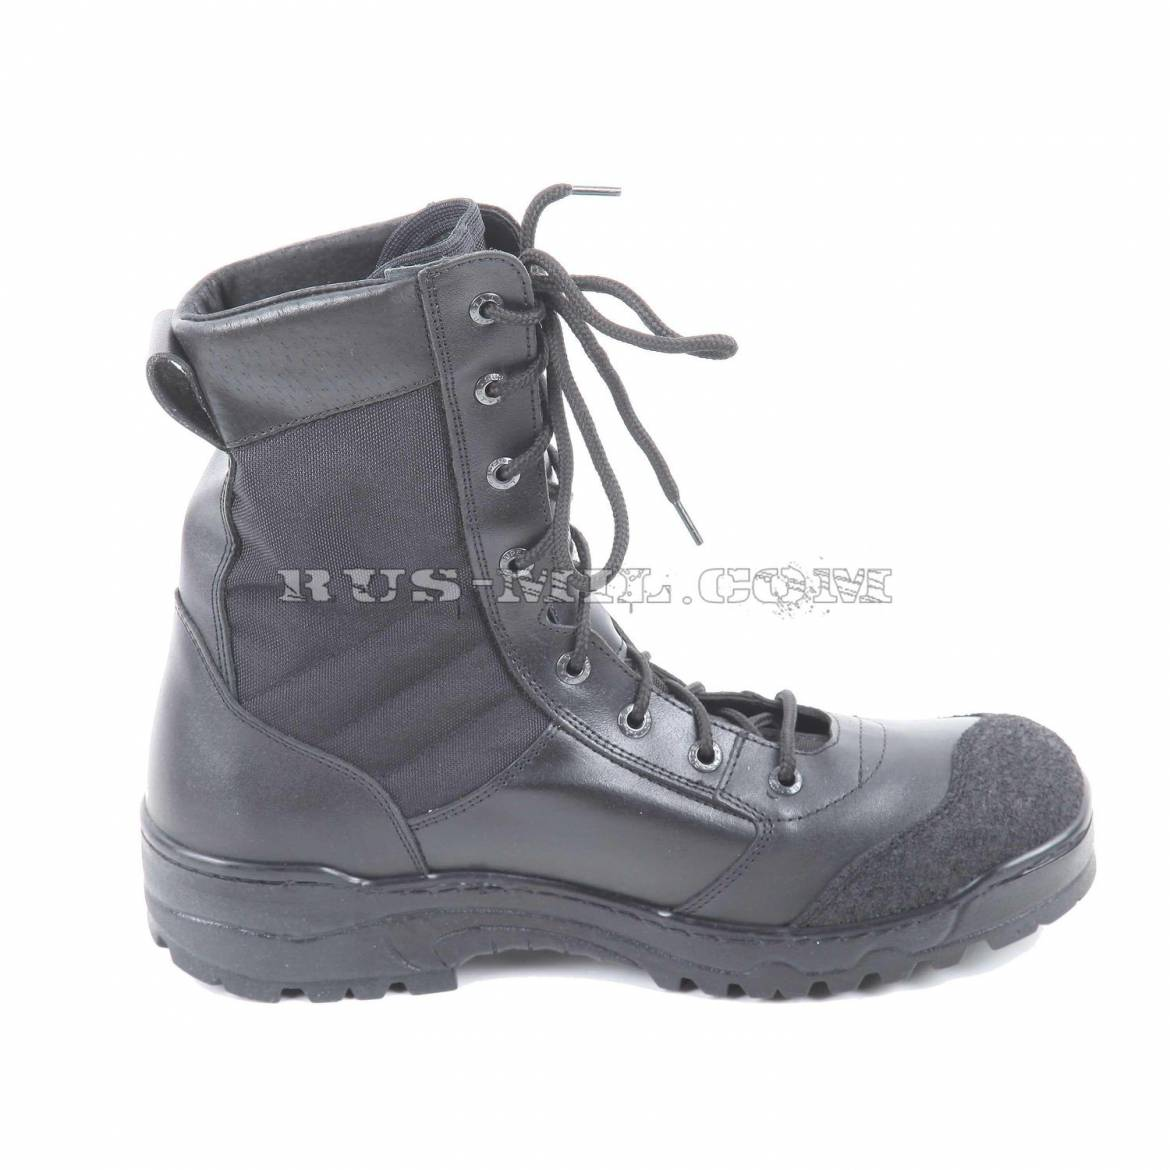 Russian-spetsnaz-Boots-Garsing-m.-339-black-at-low-price.jpg